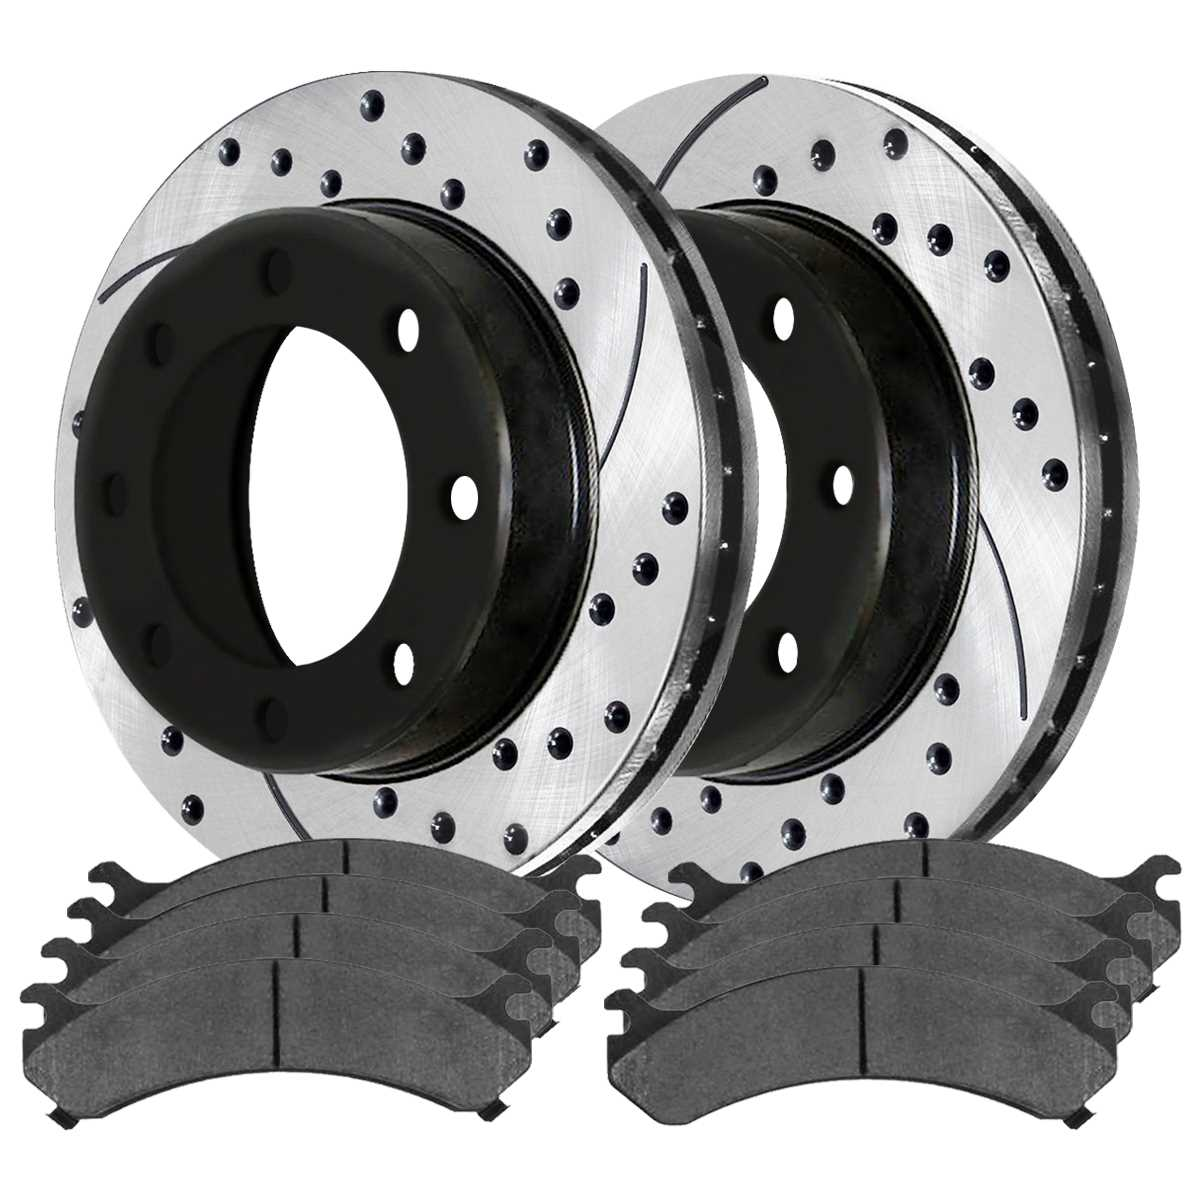 8 Ceramic Pads 4 Prime Choice Auto Parts SCD929PR41405 Front Rear Drilled Slotted Rotors